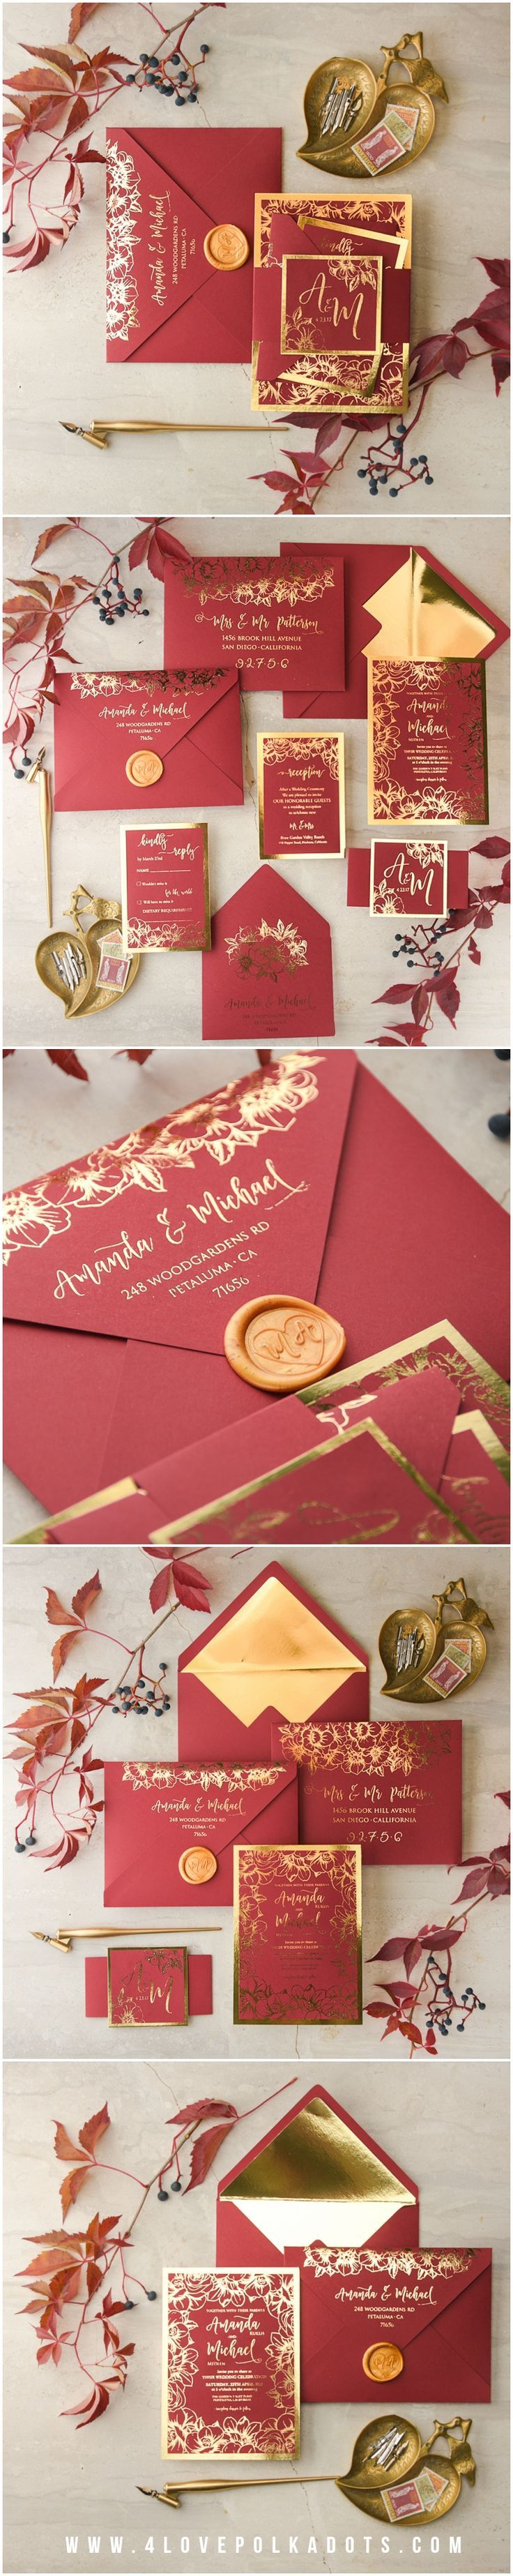 WEDDING INVITATIONS glitter | Magazines, Facebook and Twitter